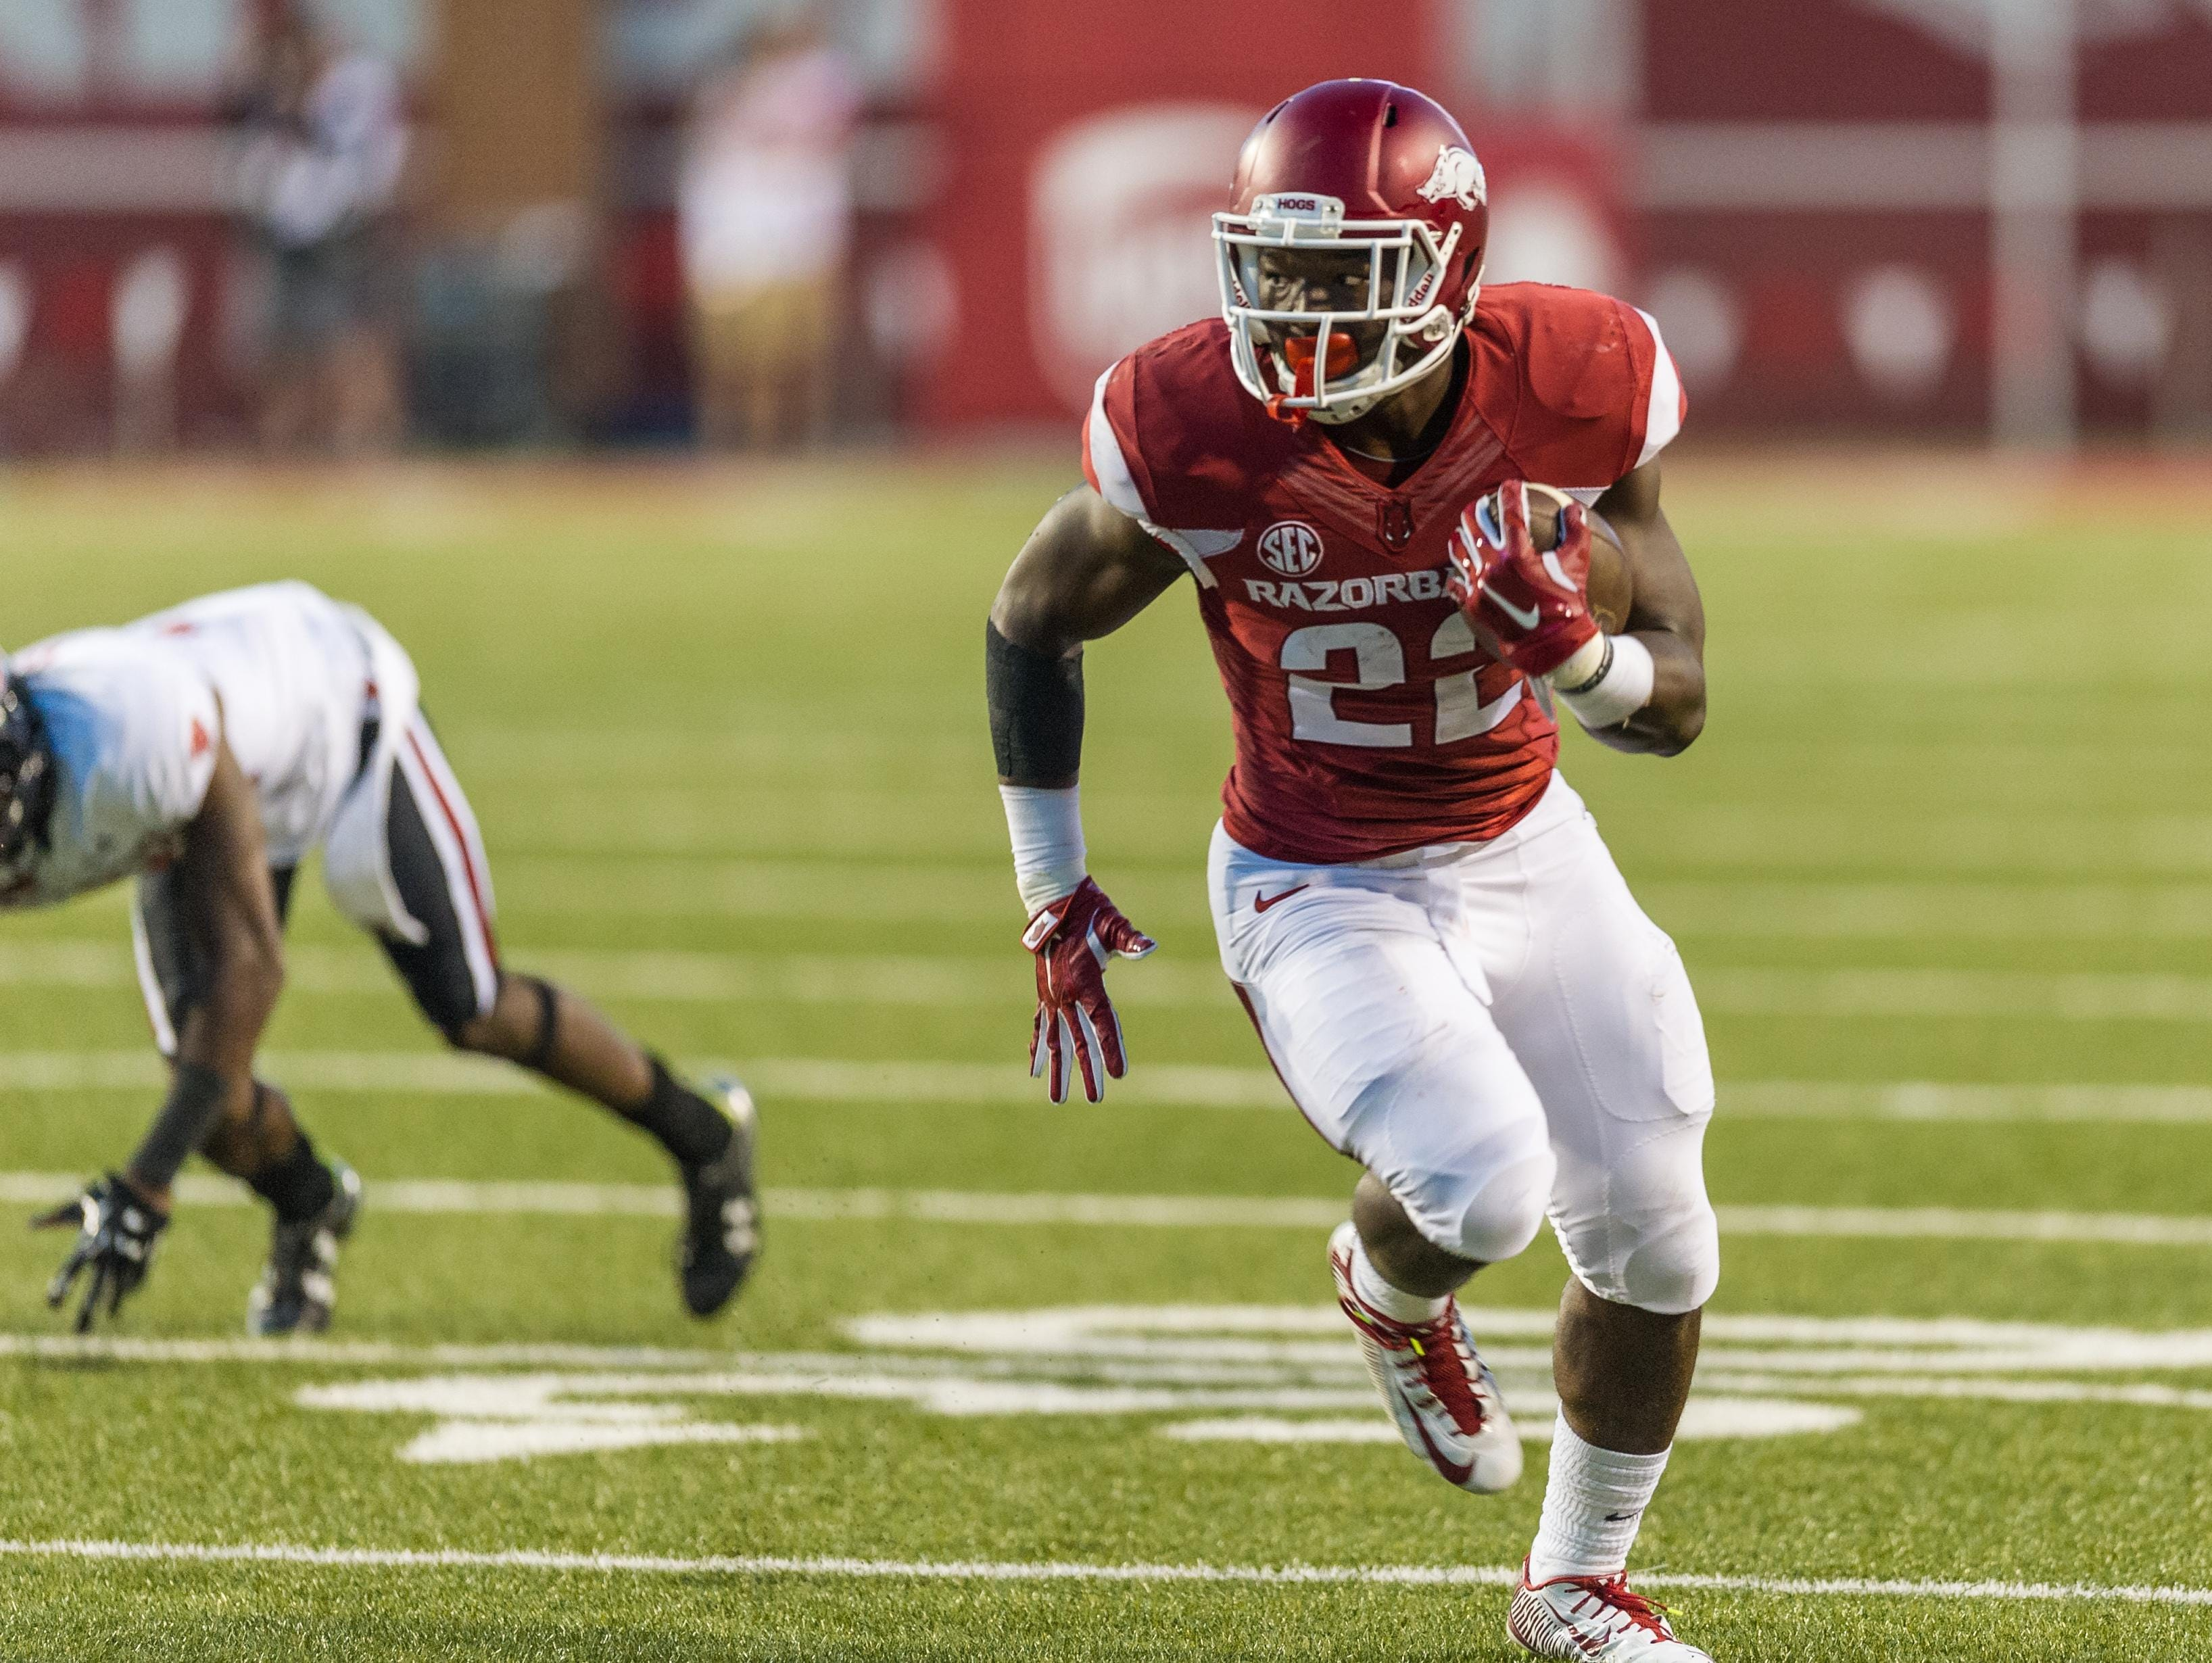 Arkansas running back Rawleigh Williams (22) carries during a game between the Razorbacks and the Texas Tech Red Raiders at Reynolds Razorback Stadium in Fayetteville.